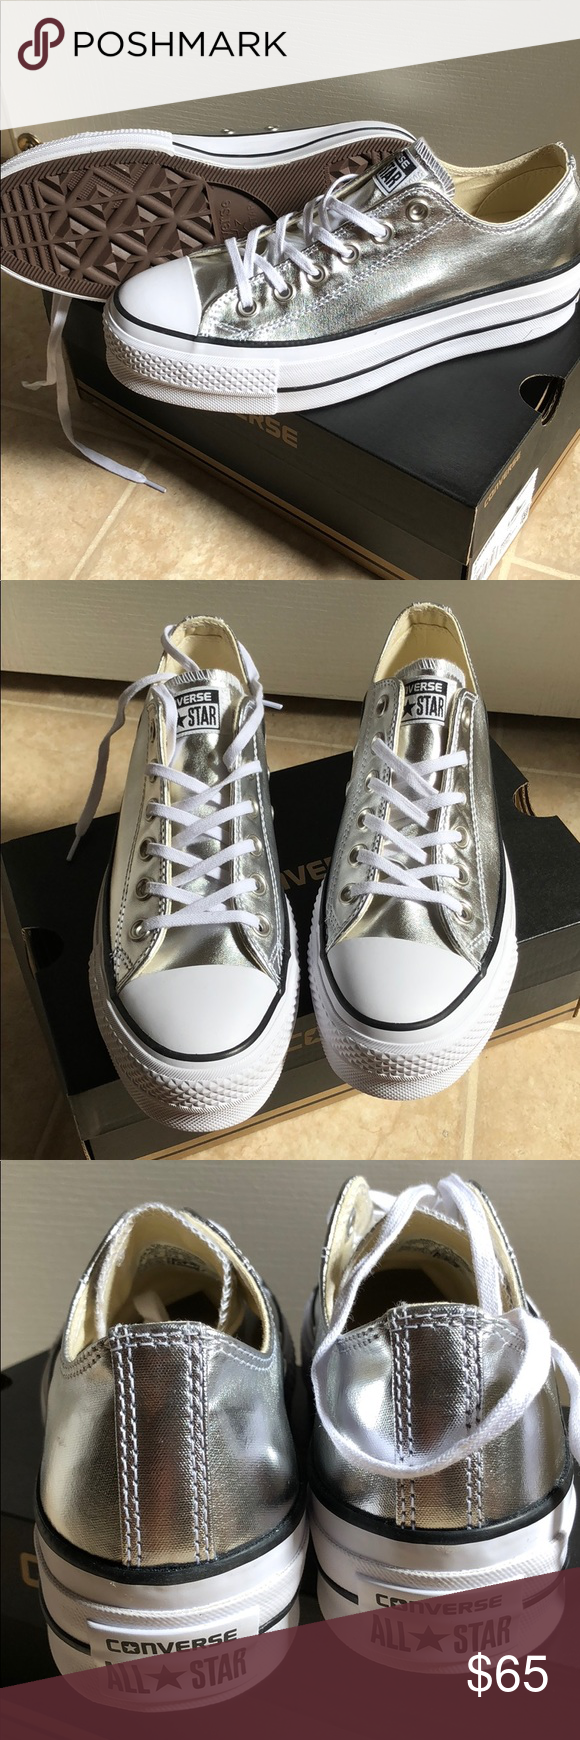 """3f7874cfe69 Converse ✨NEW IN BOX✨ FIRM PRICE ✨ Converse Chuck Taylor All Star lift low  top. Metallic silver canvas with about 1"""" platform for lift."""